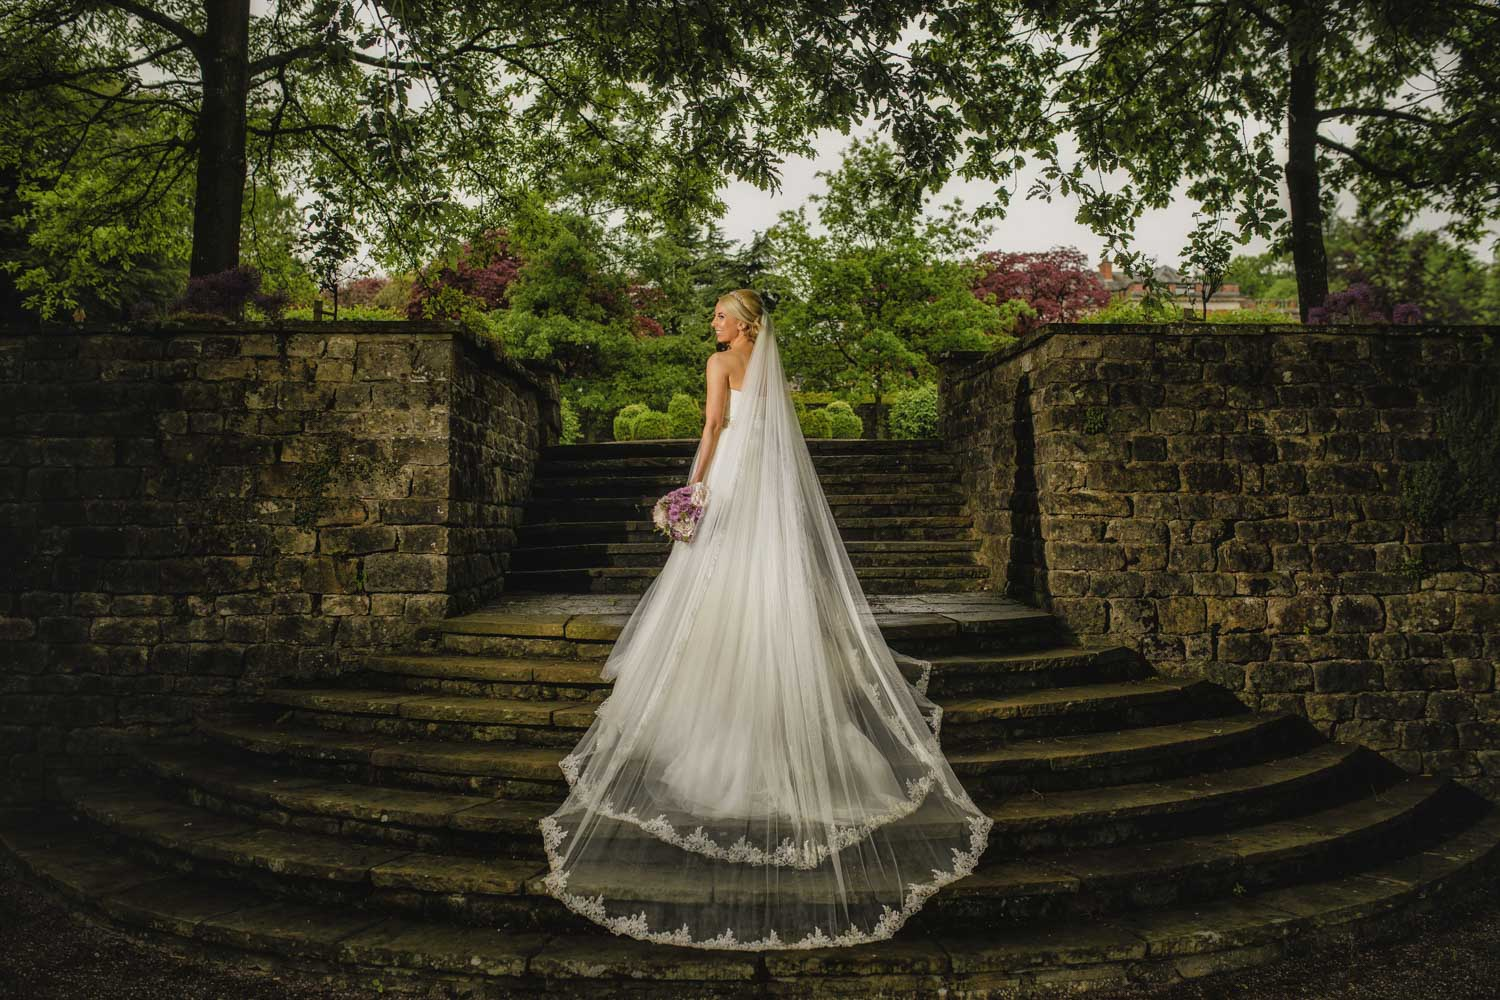 Classic bride dress veil steps